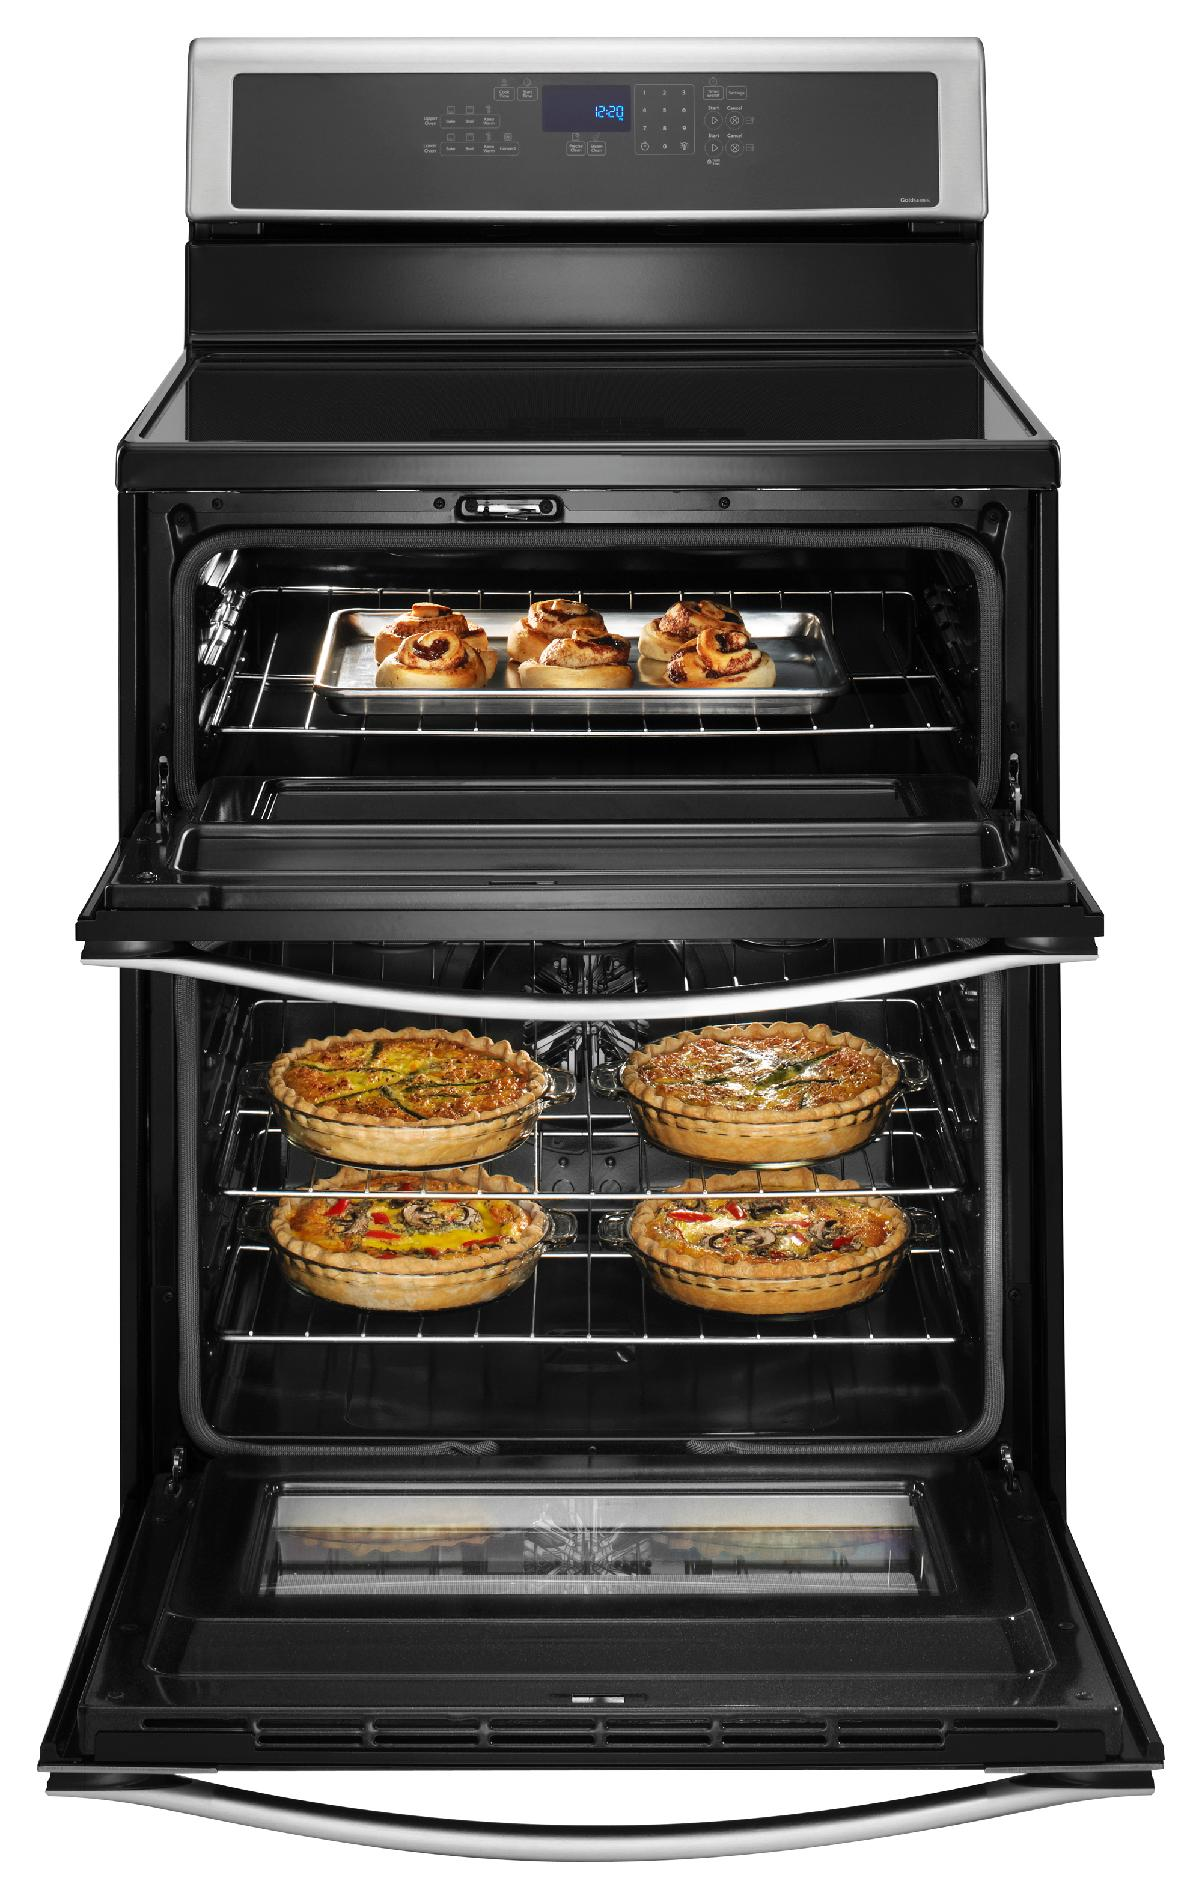 "Whirlpool WGI925C0BS 30"" Electric Range w/ Induction Cooktop, Double Oven - Stainless Steel"